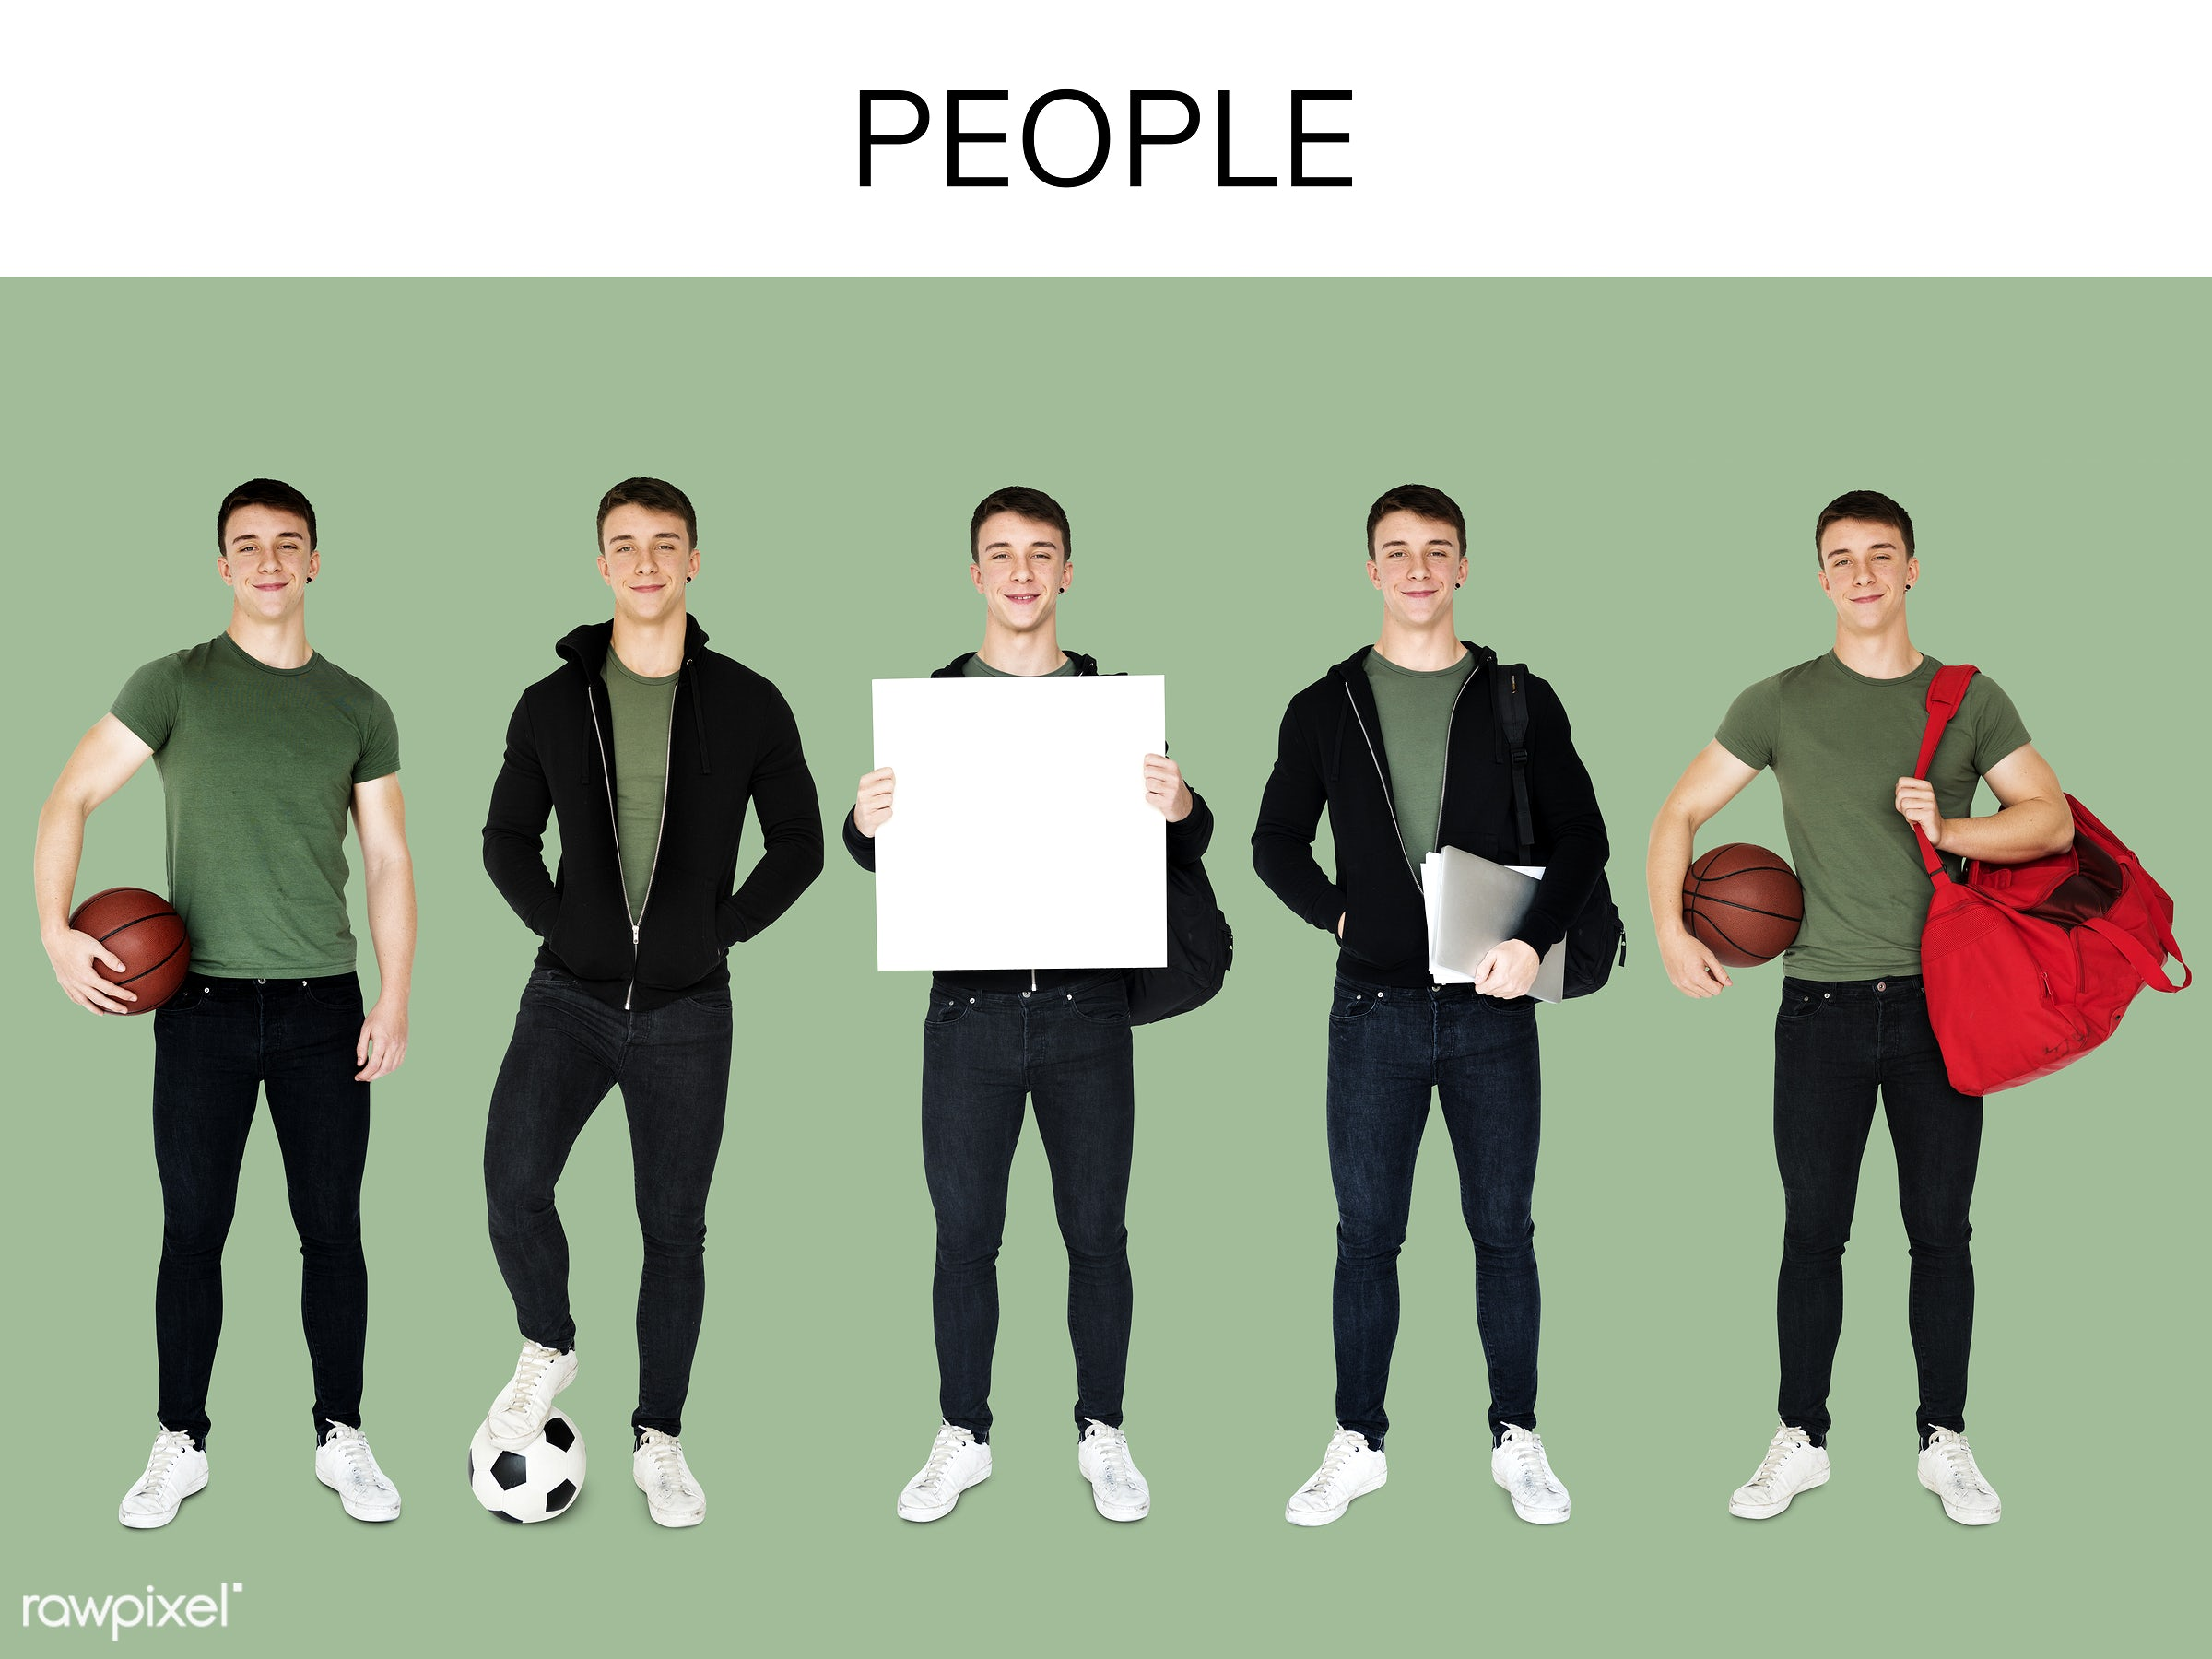 studio, basketball, person, player, diverse, set, exercise, millennials, study, collection, education, recreation, people,...